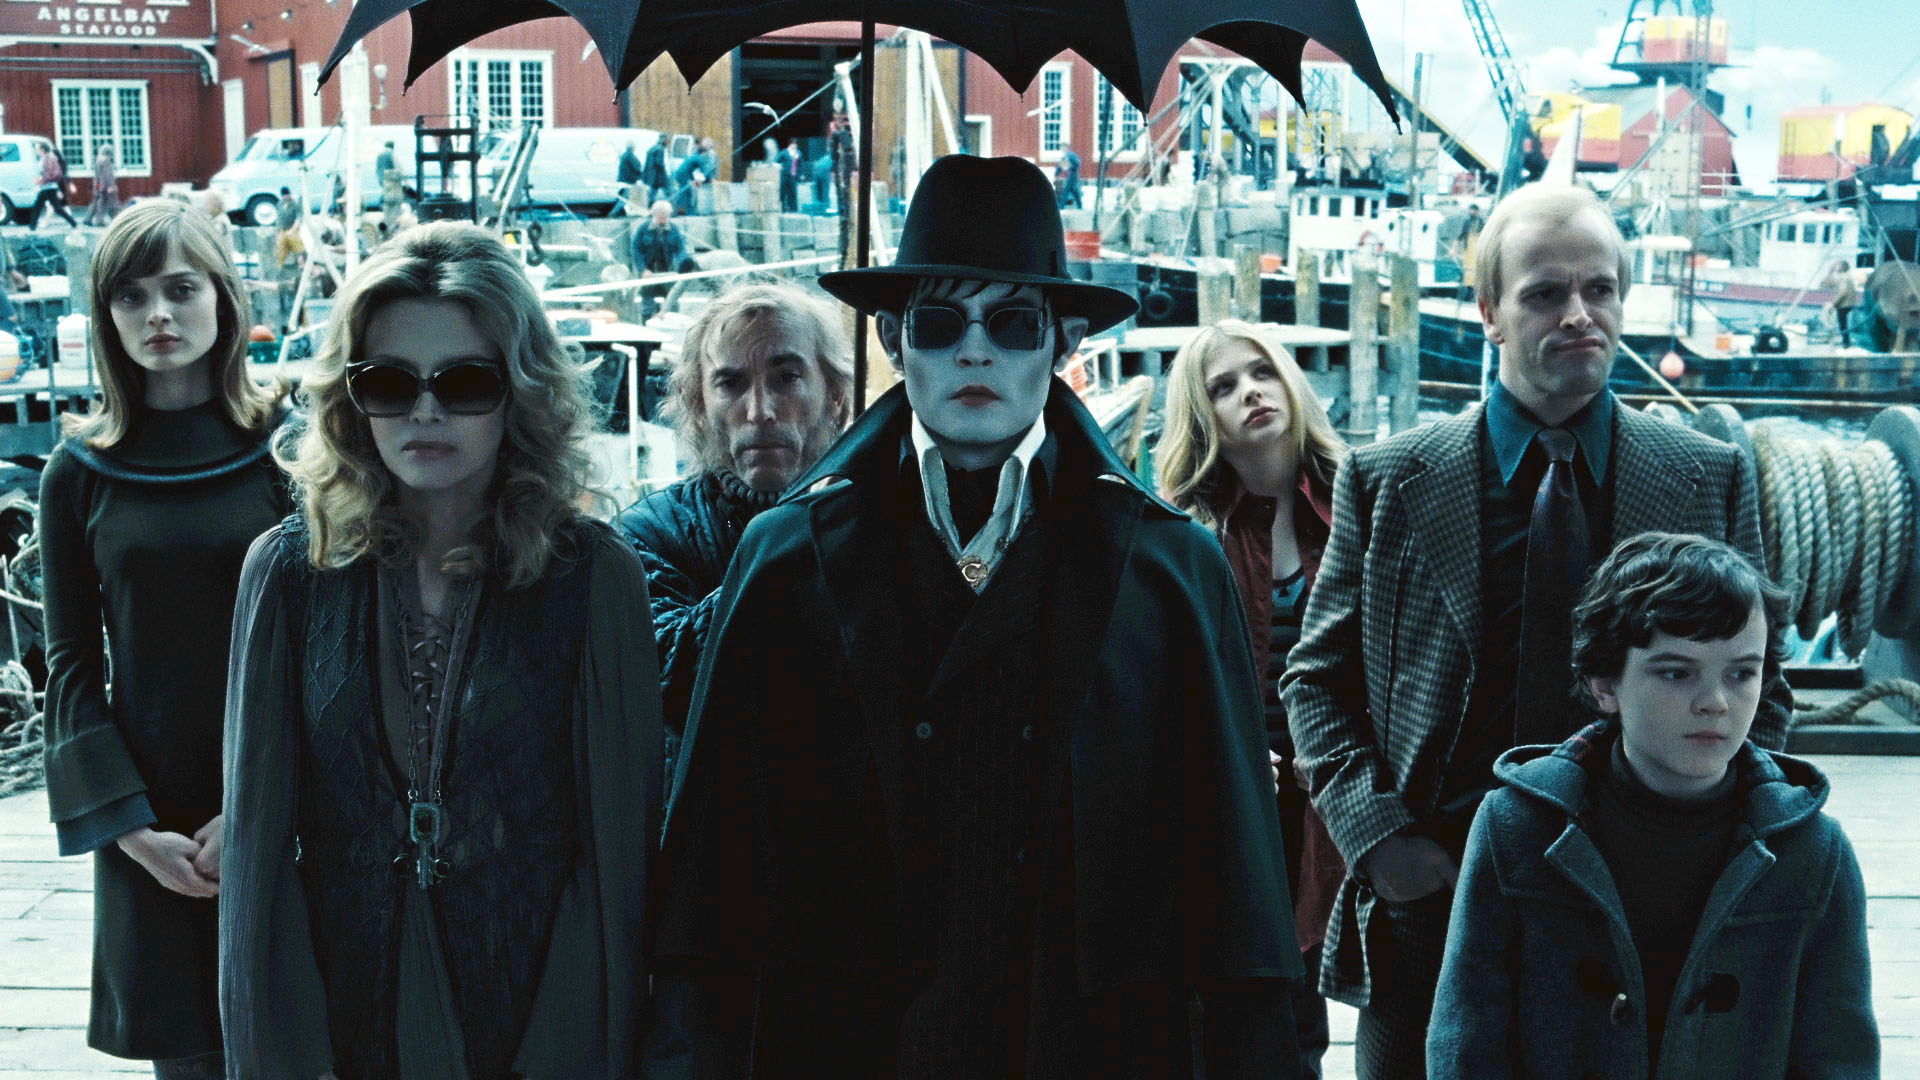 Dark shadows de Tim Burton